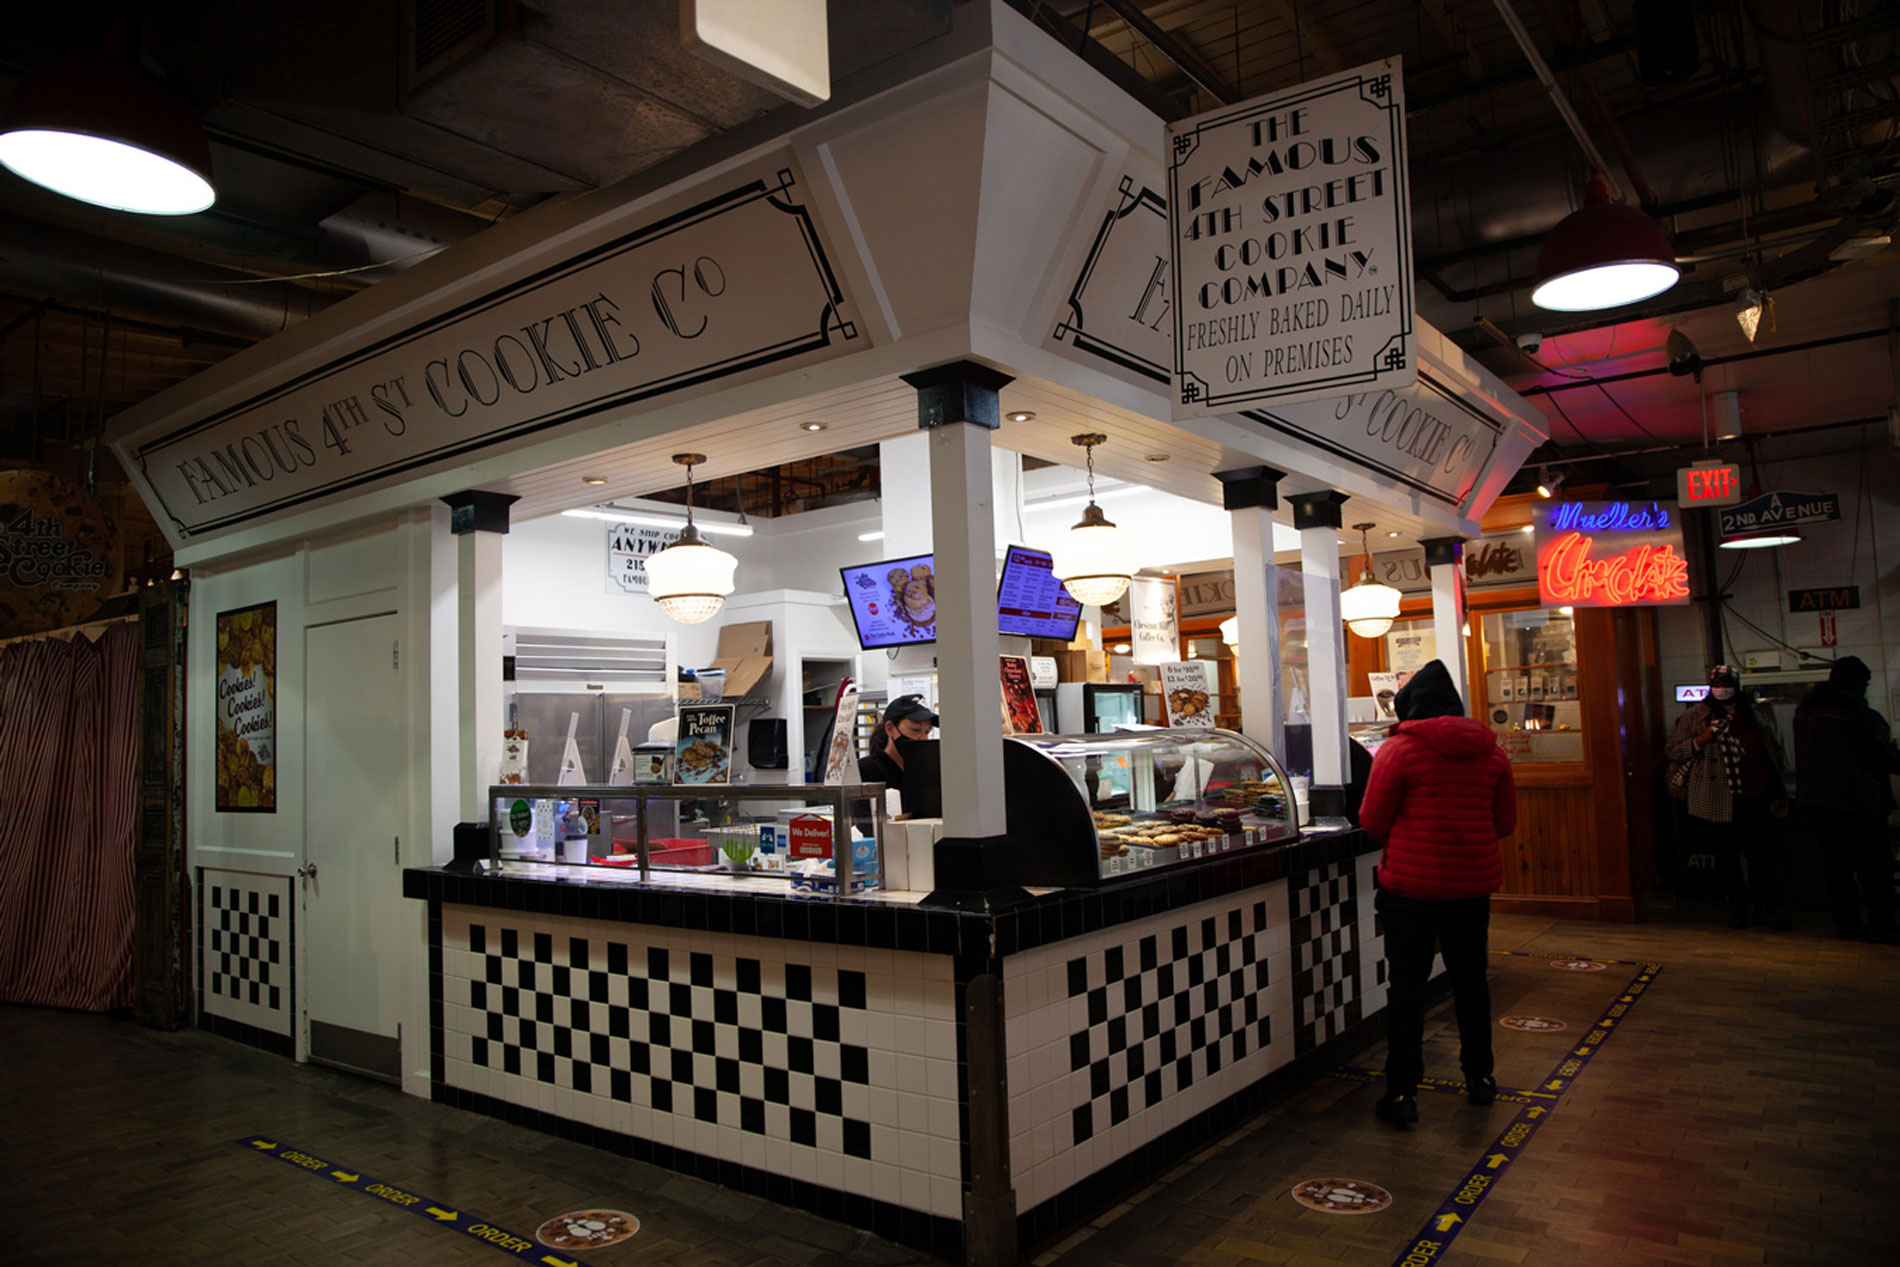 The Famous 4th Street Cookie in Philadelphia's Reading Terminal Market.